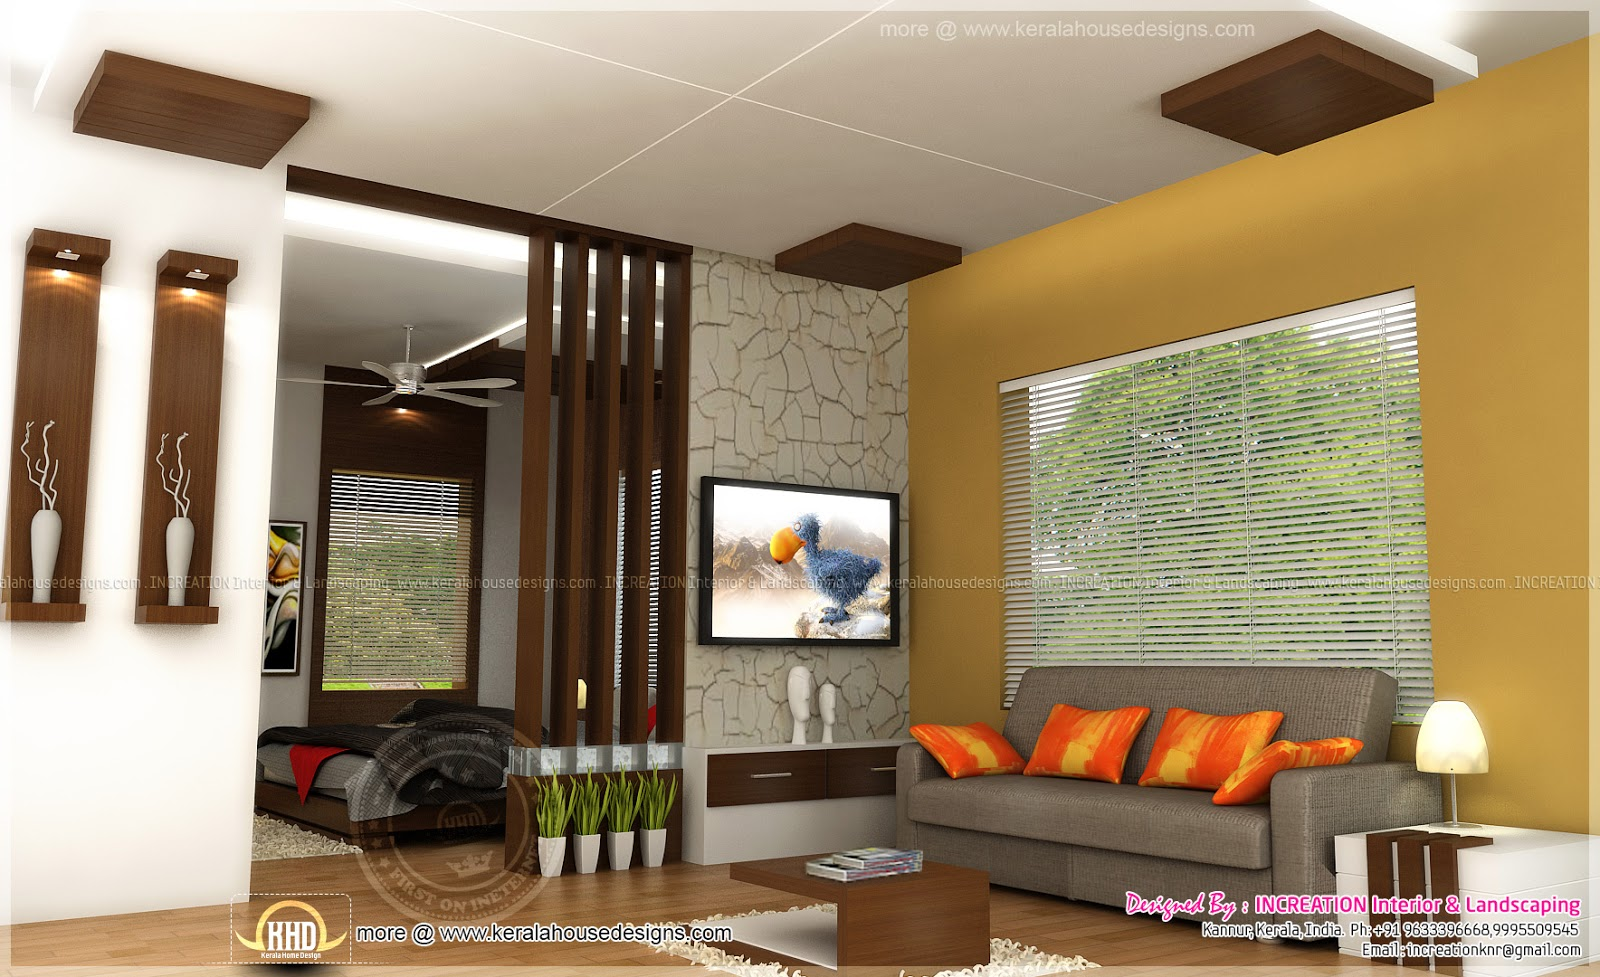 Interior designs from kannur kerala kerala home design for House design inside